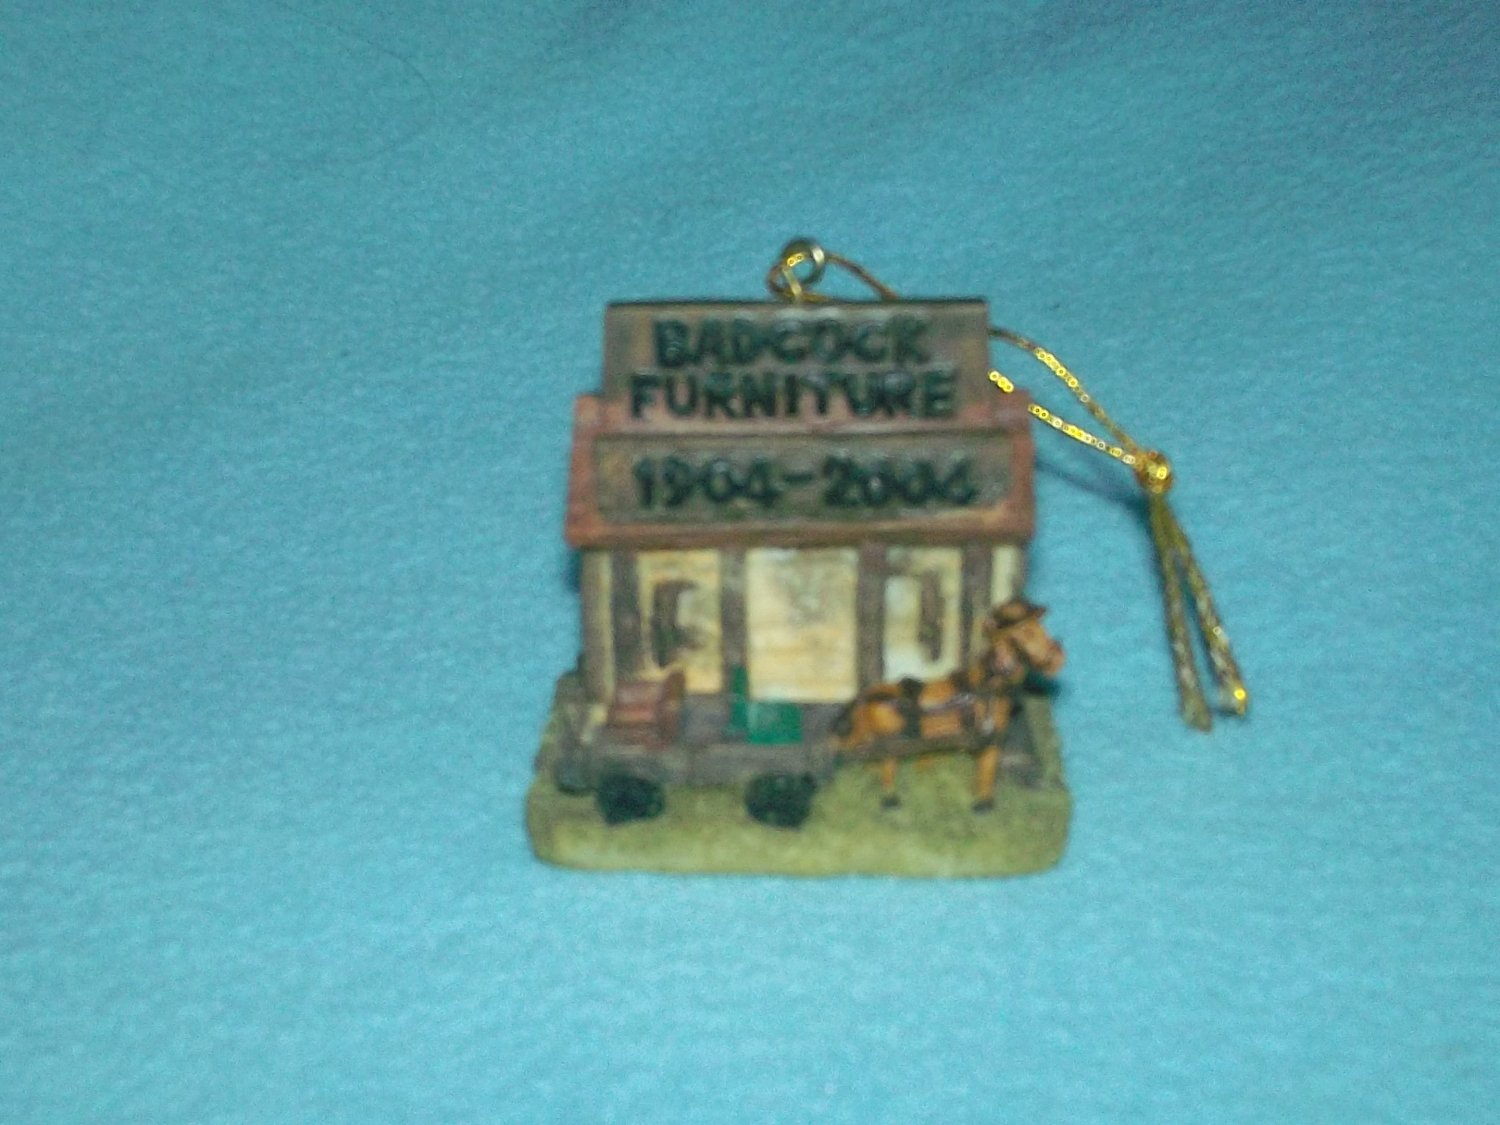 BADCOCK FURNITURE 100th Anniversary ORNAMENT 1904-2004 Horse Wagon ADVERTISING